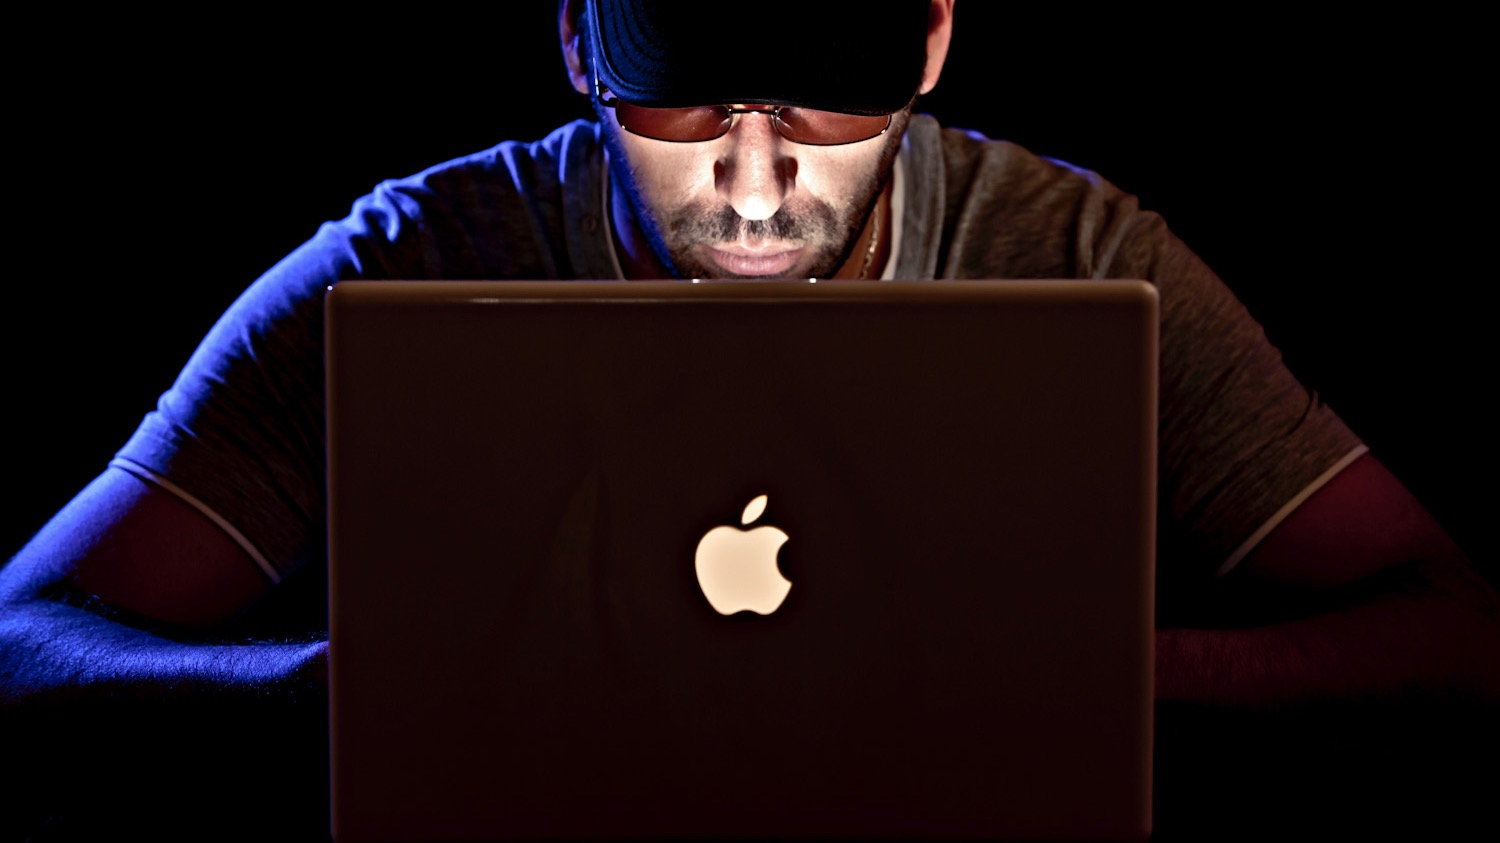 Image result for Are the privacy matters exposed by internet